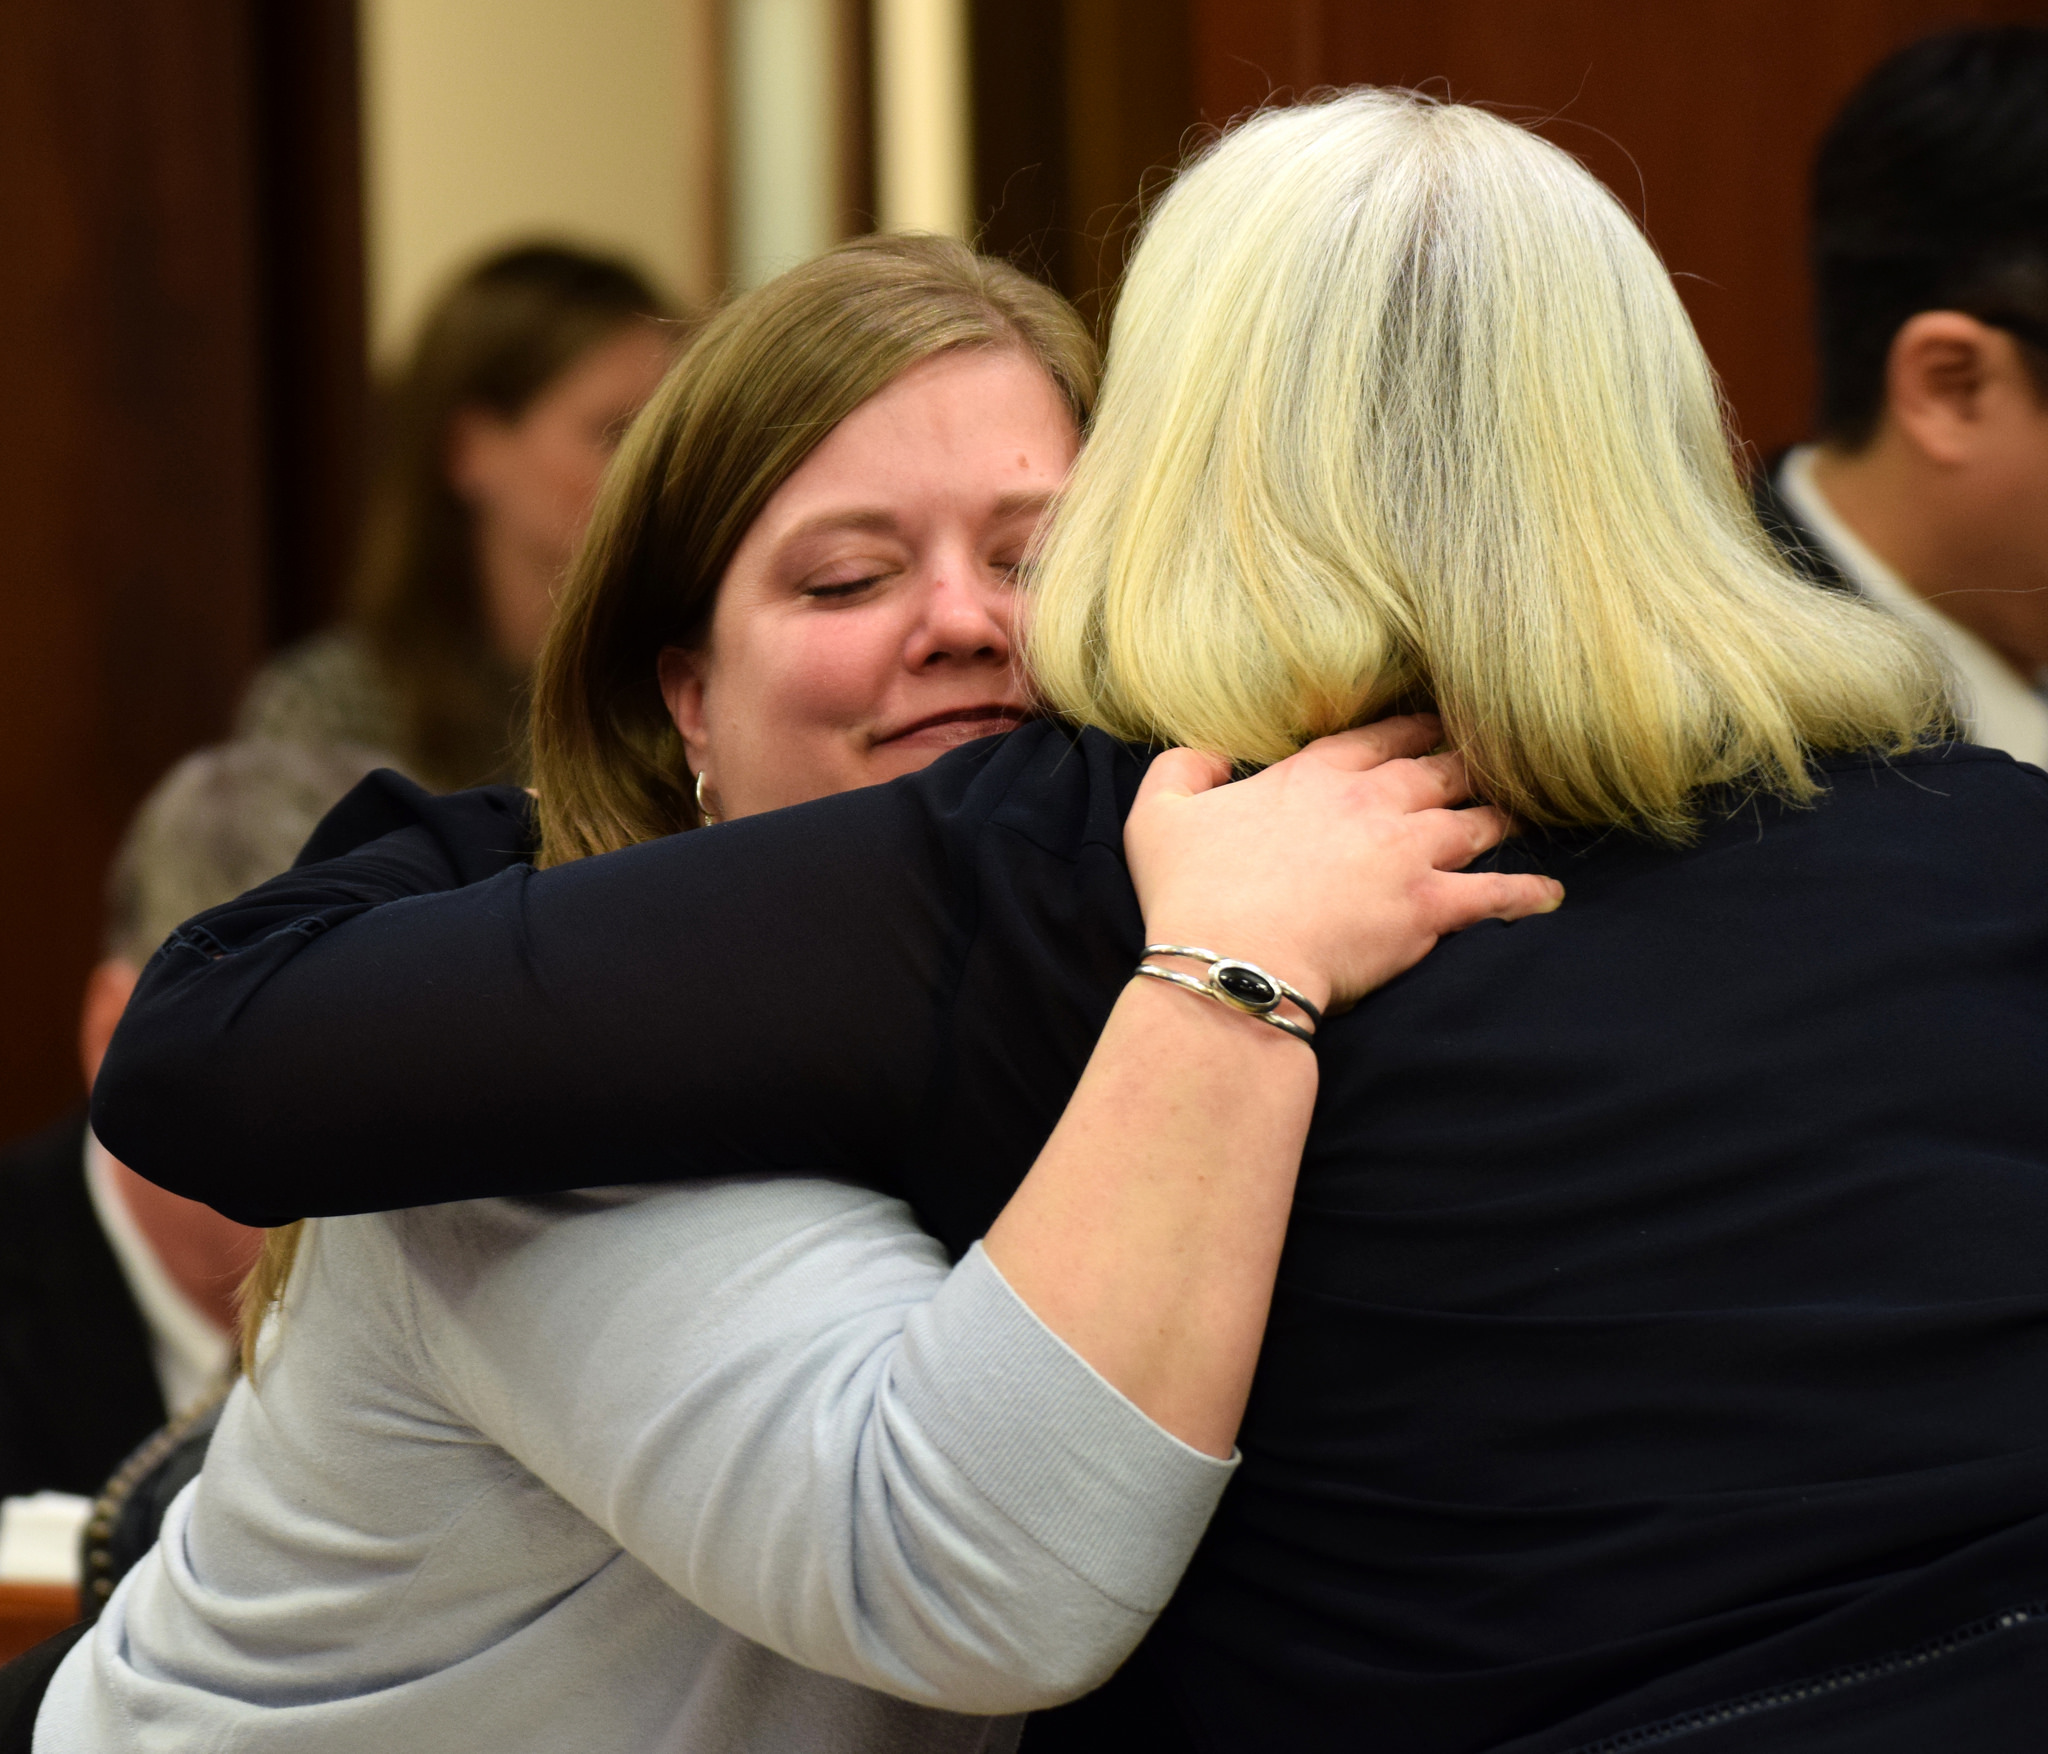 """Rep. Geran Tarr, D-Anchorage, gets a congratulatory hug from Rep. Cathy Muñoz, R-Juneau, after the house passes House Bill 44. Tarr first brought """"Erin's Law"""" to the legislature last year. (Photo by Skip Gray/360 North)"""